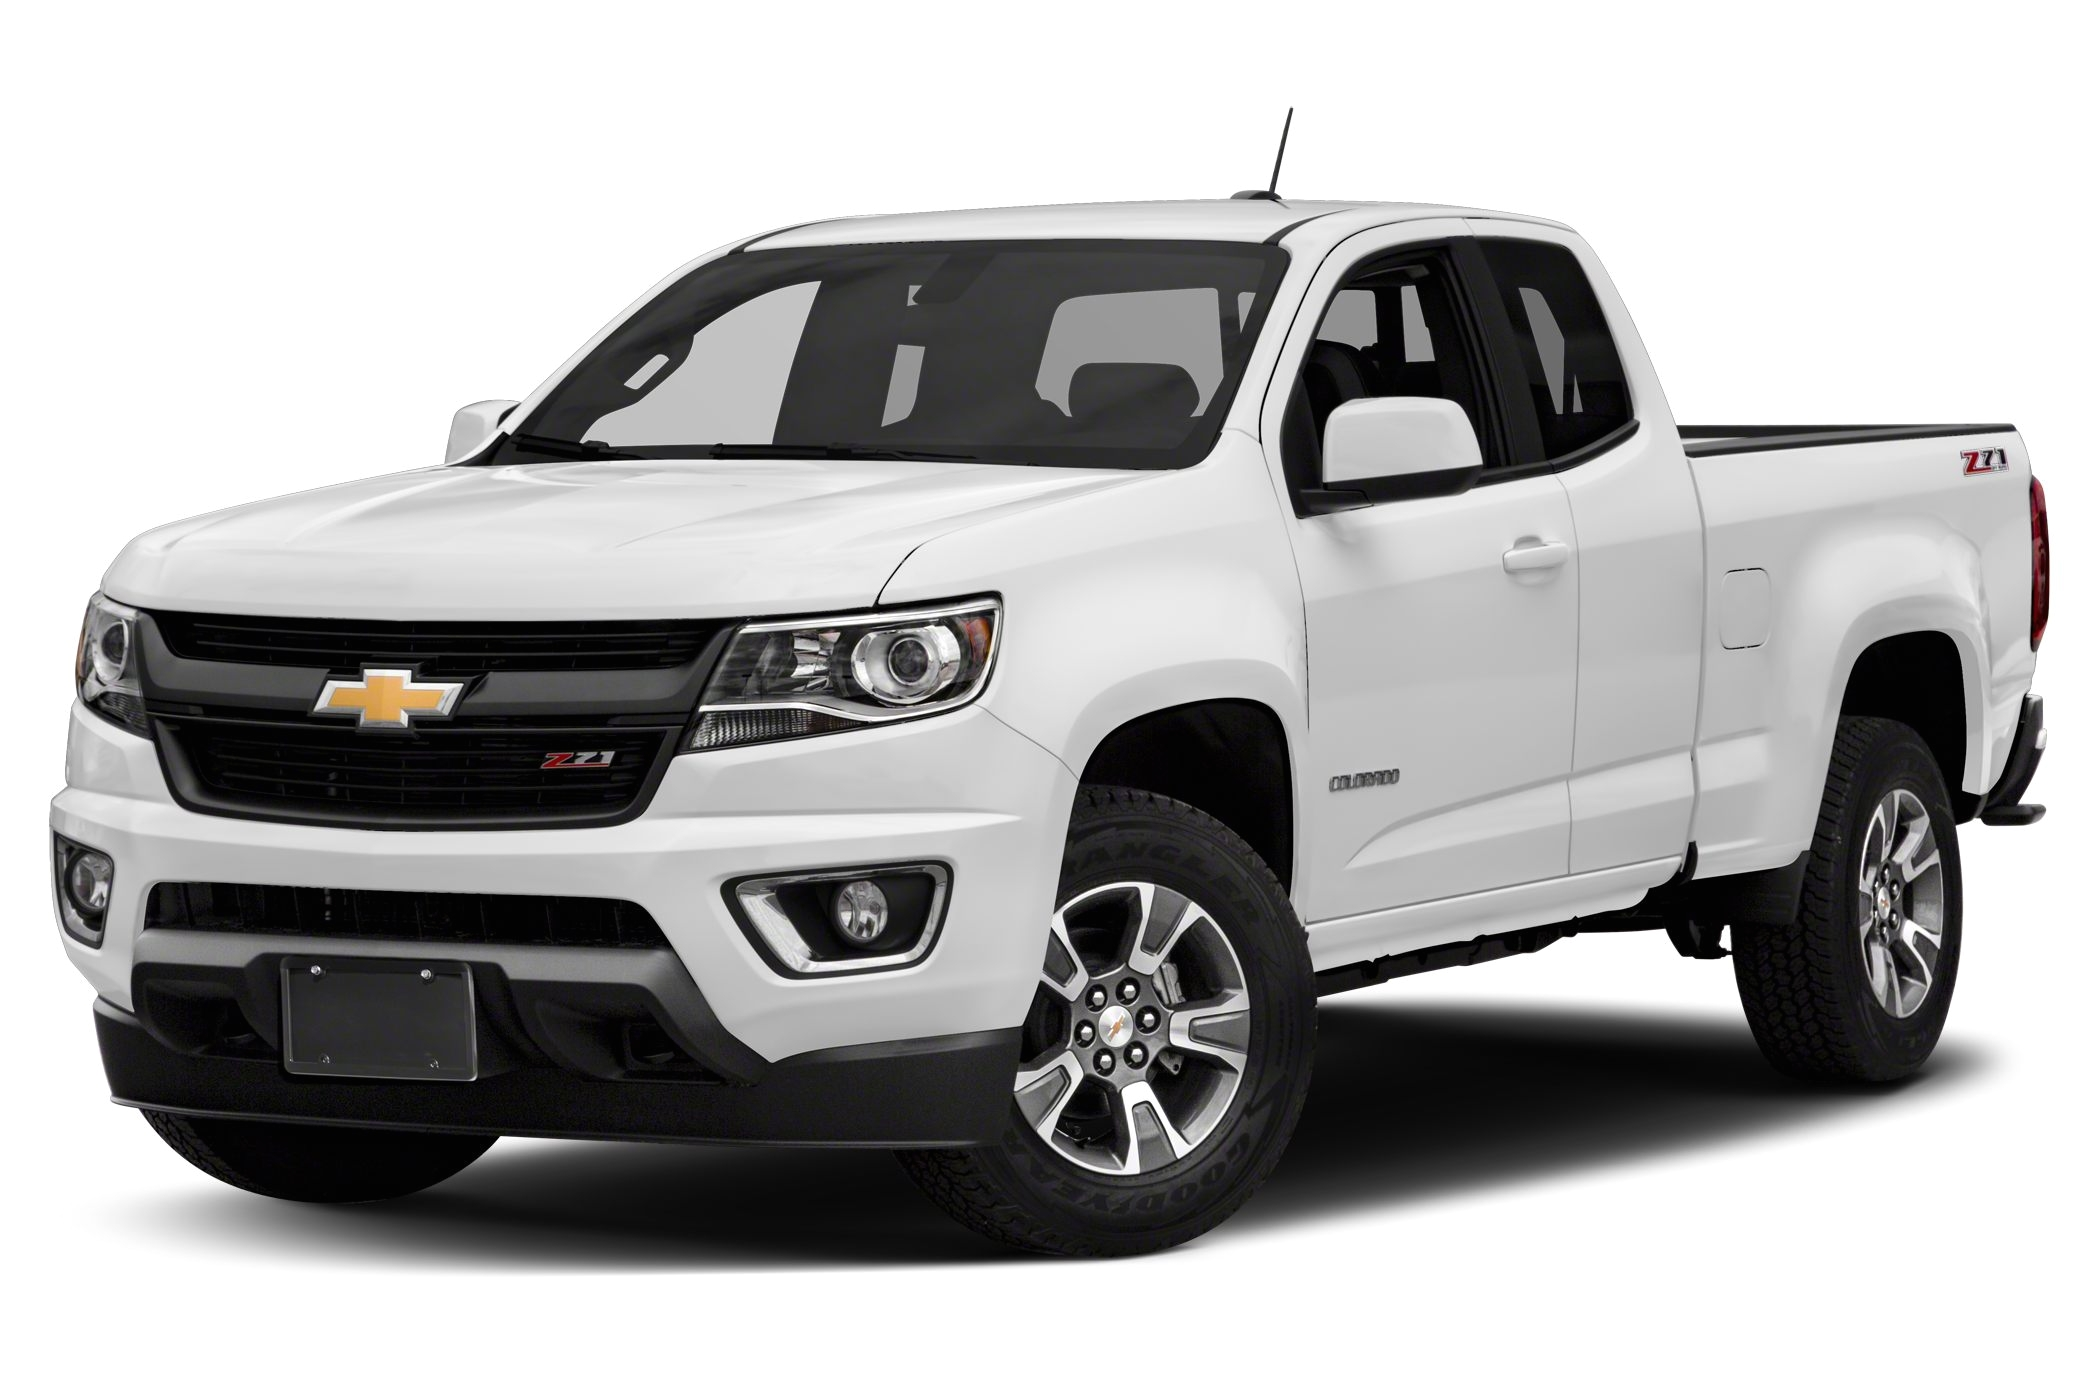 2005 Chevy Colorado Tail Lights 2018 Chevrolet Colorado Z71 4×4 Extended Cab 6 Ft Box 128 3 In Wb